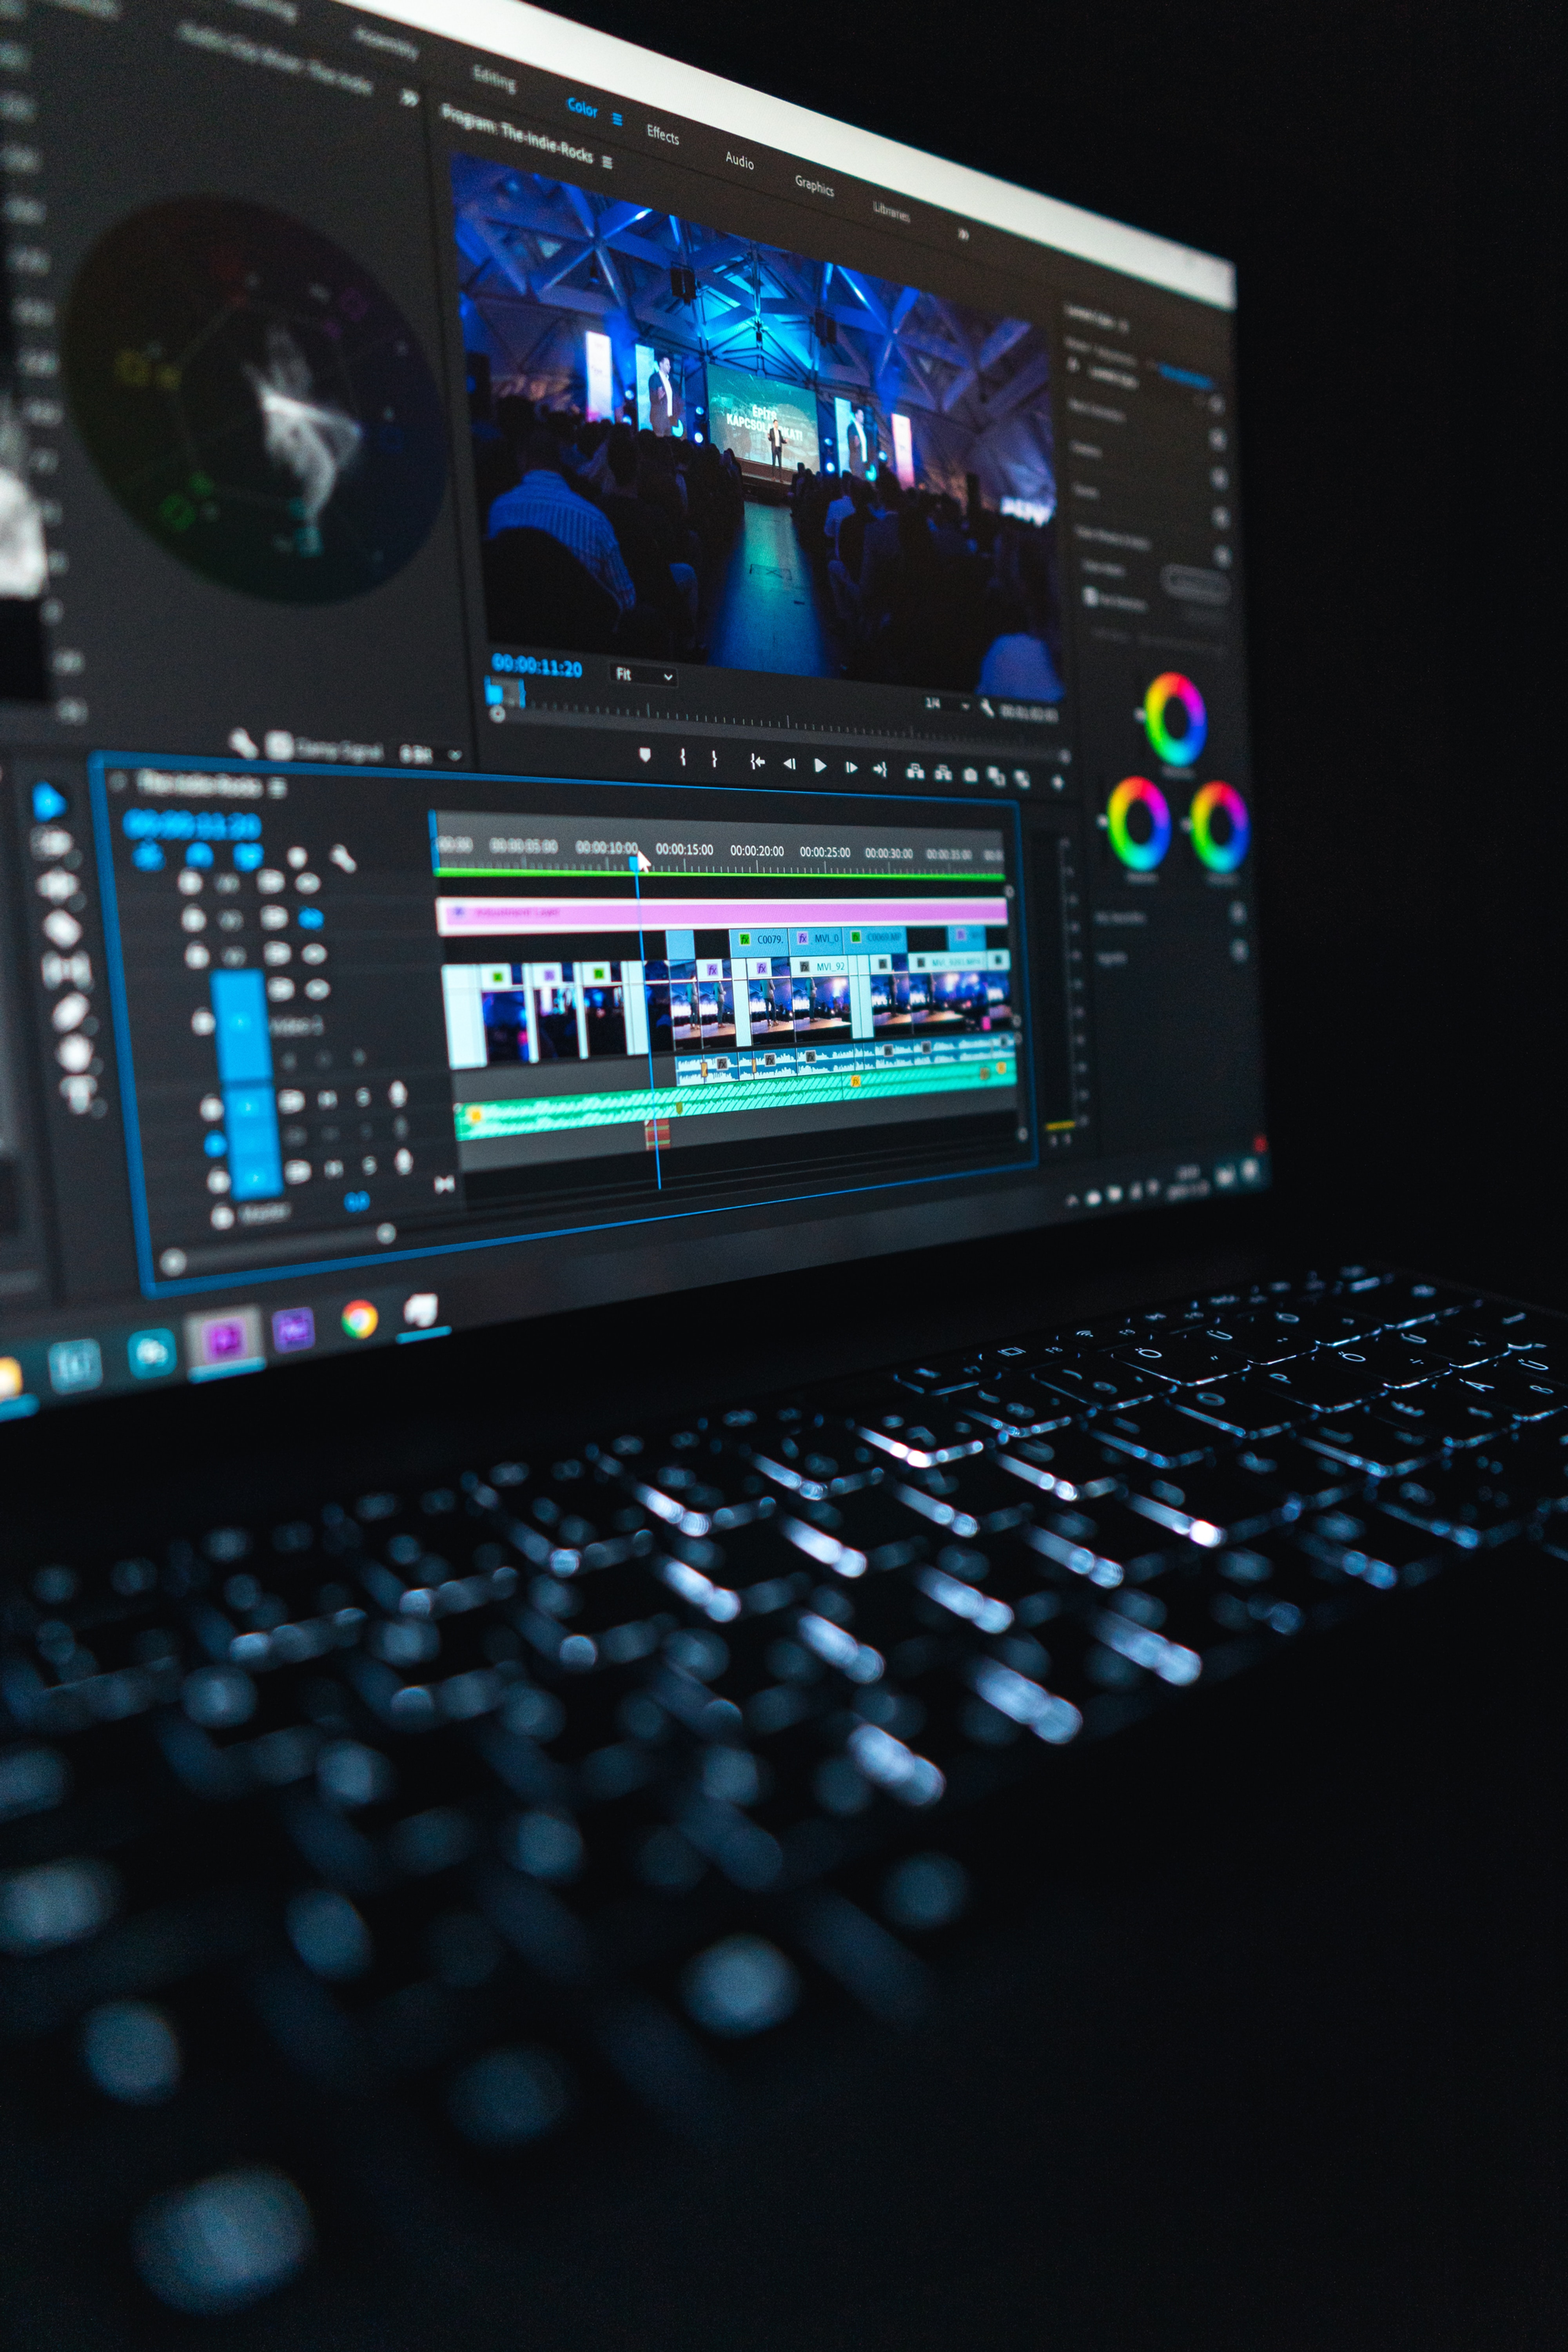 PHOTO & VIDEO EDITING SERVICES